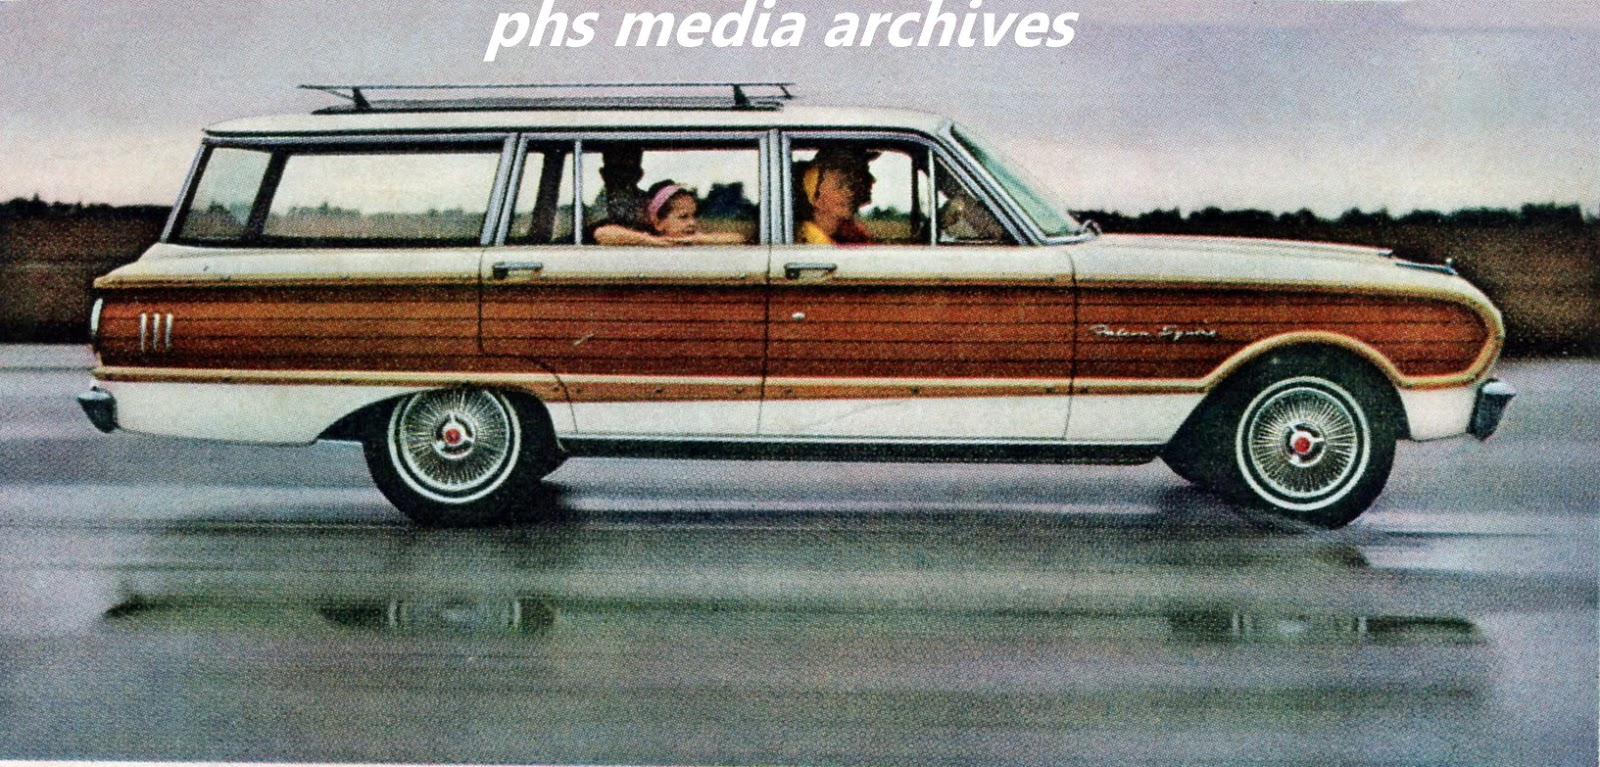 Ford Station Wagon Line Up 1963 Phscollectorcarworld 1960 Studebaker Lark Wiring Diagram Jazzy Little Falcon Country Squire Is Shown Here Tooling Along In The Rain